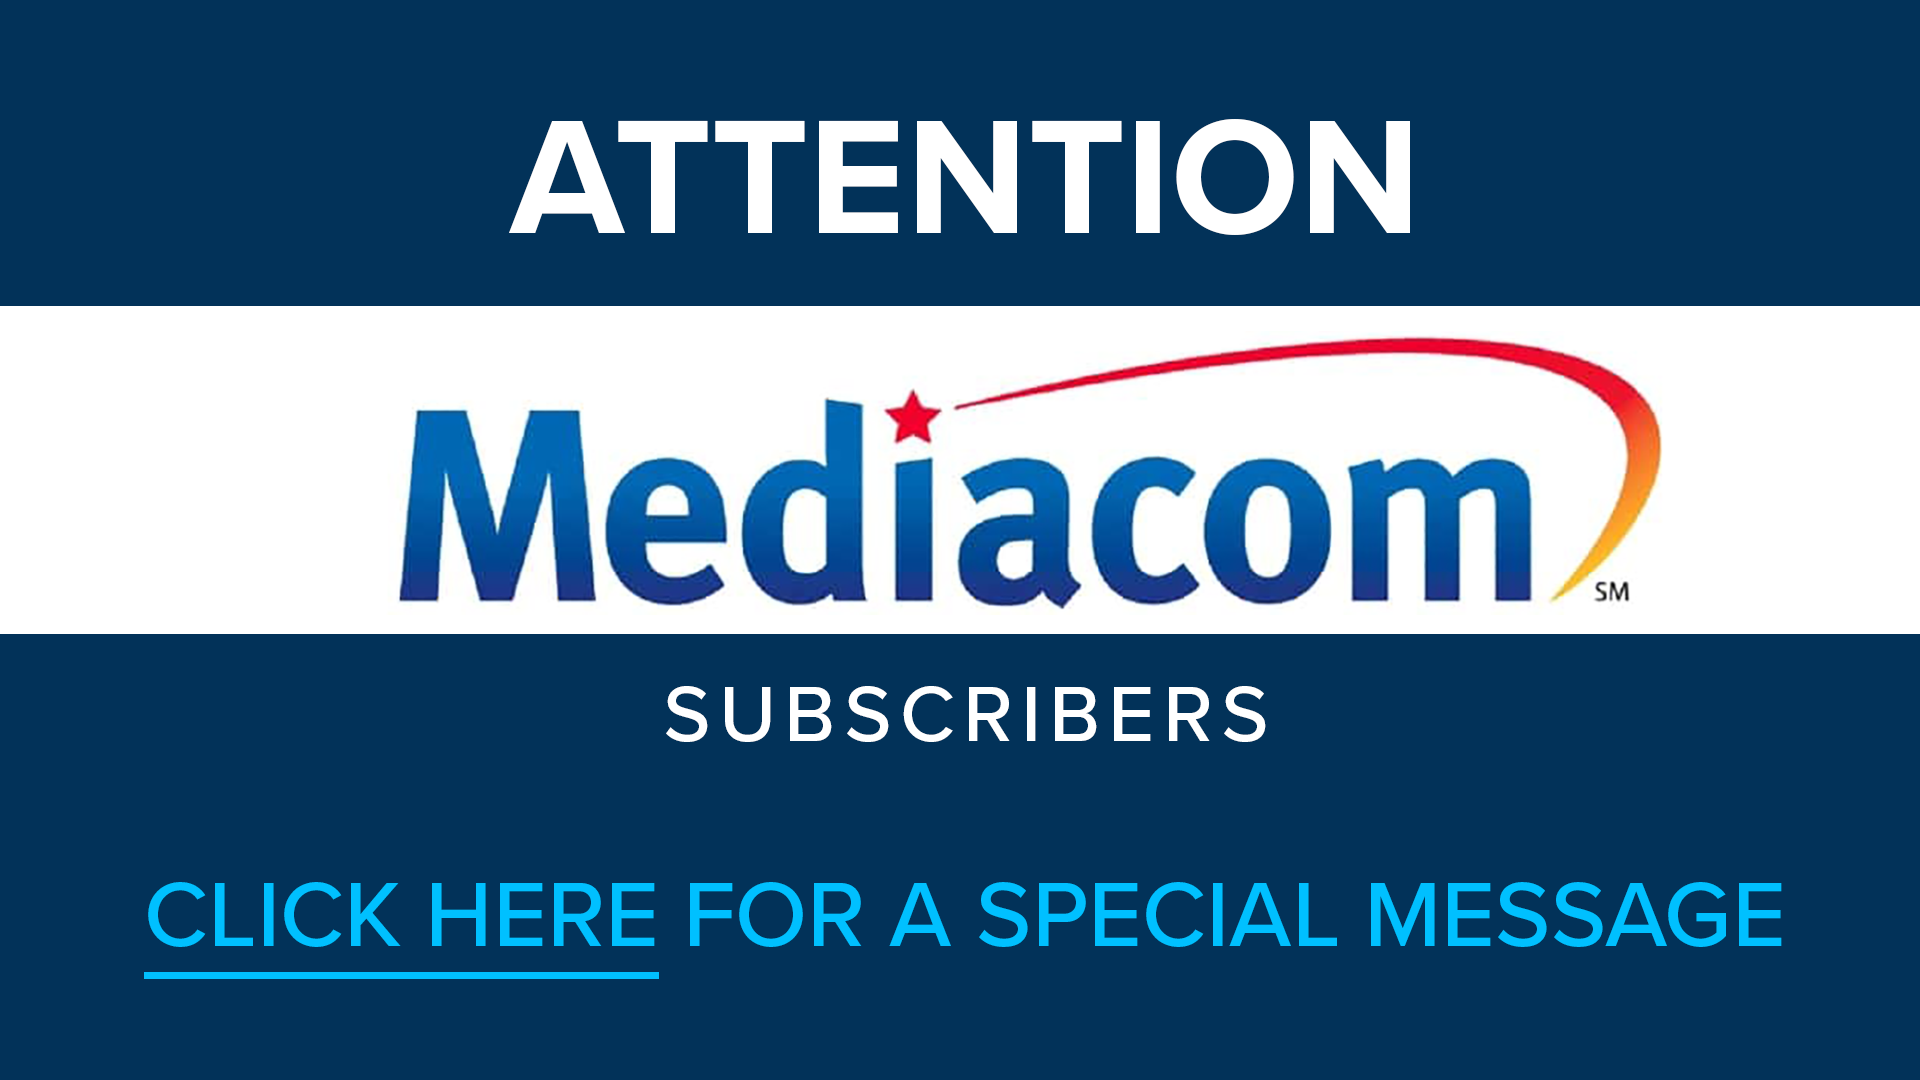 ATTENTION MEDIACOM SUBSCRIBERS